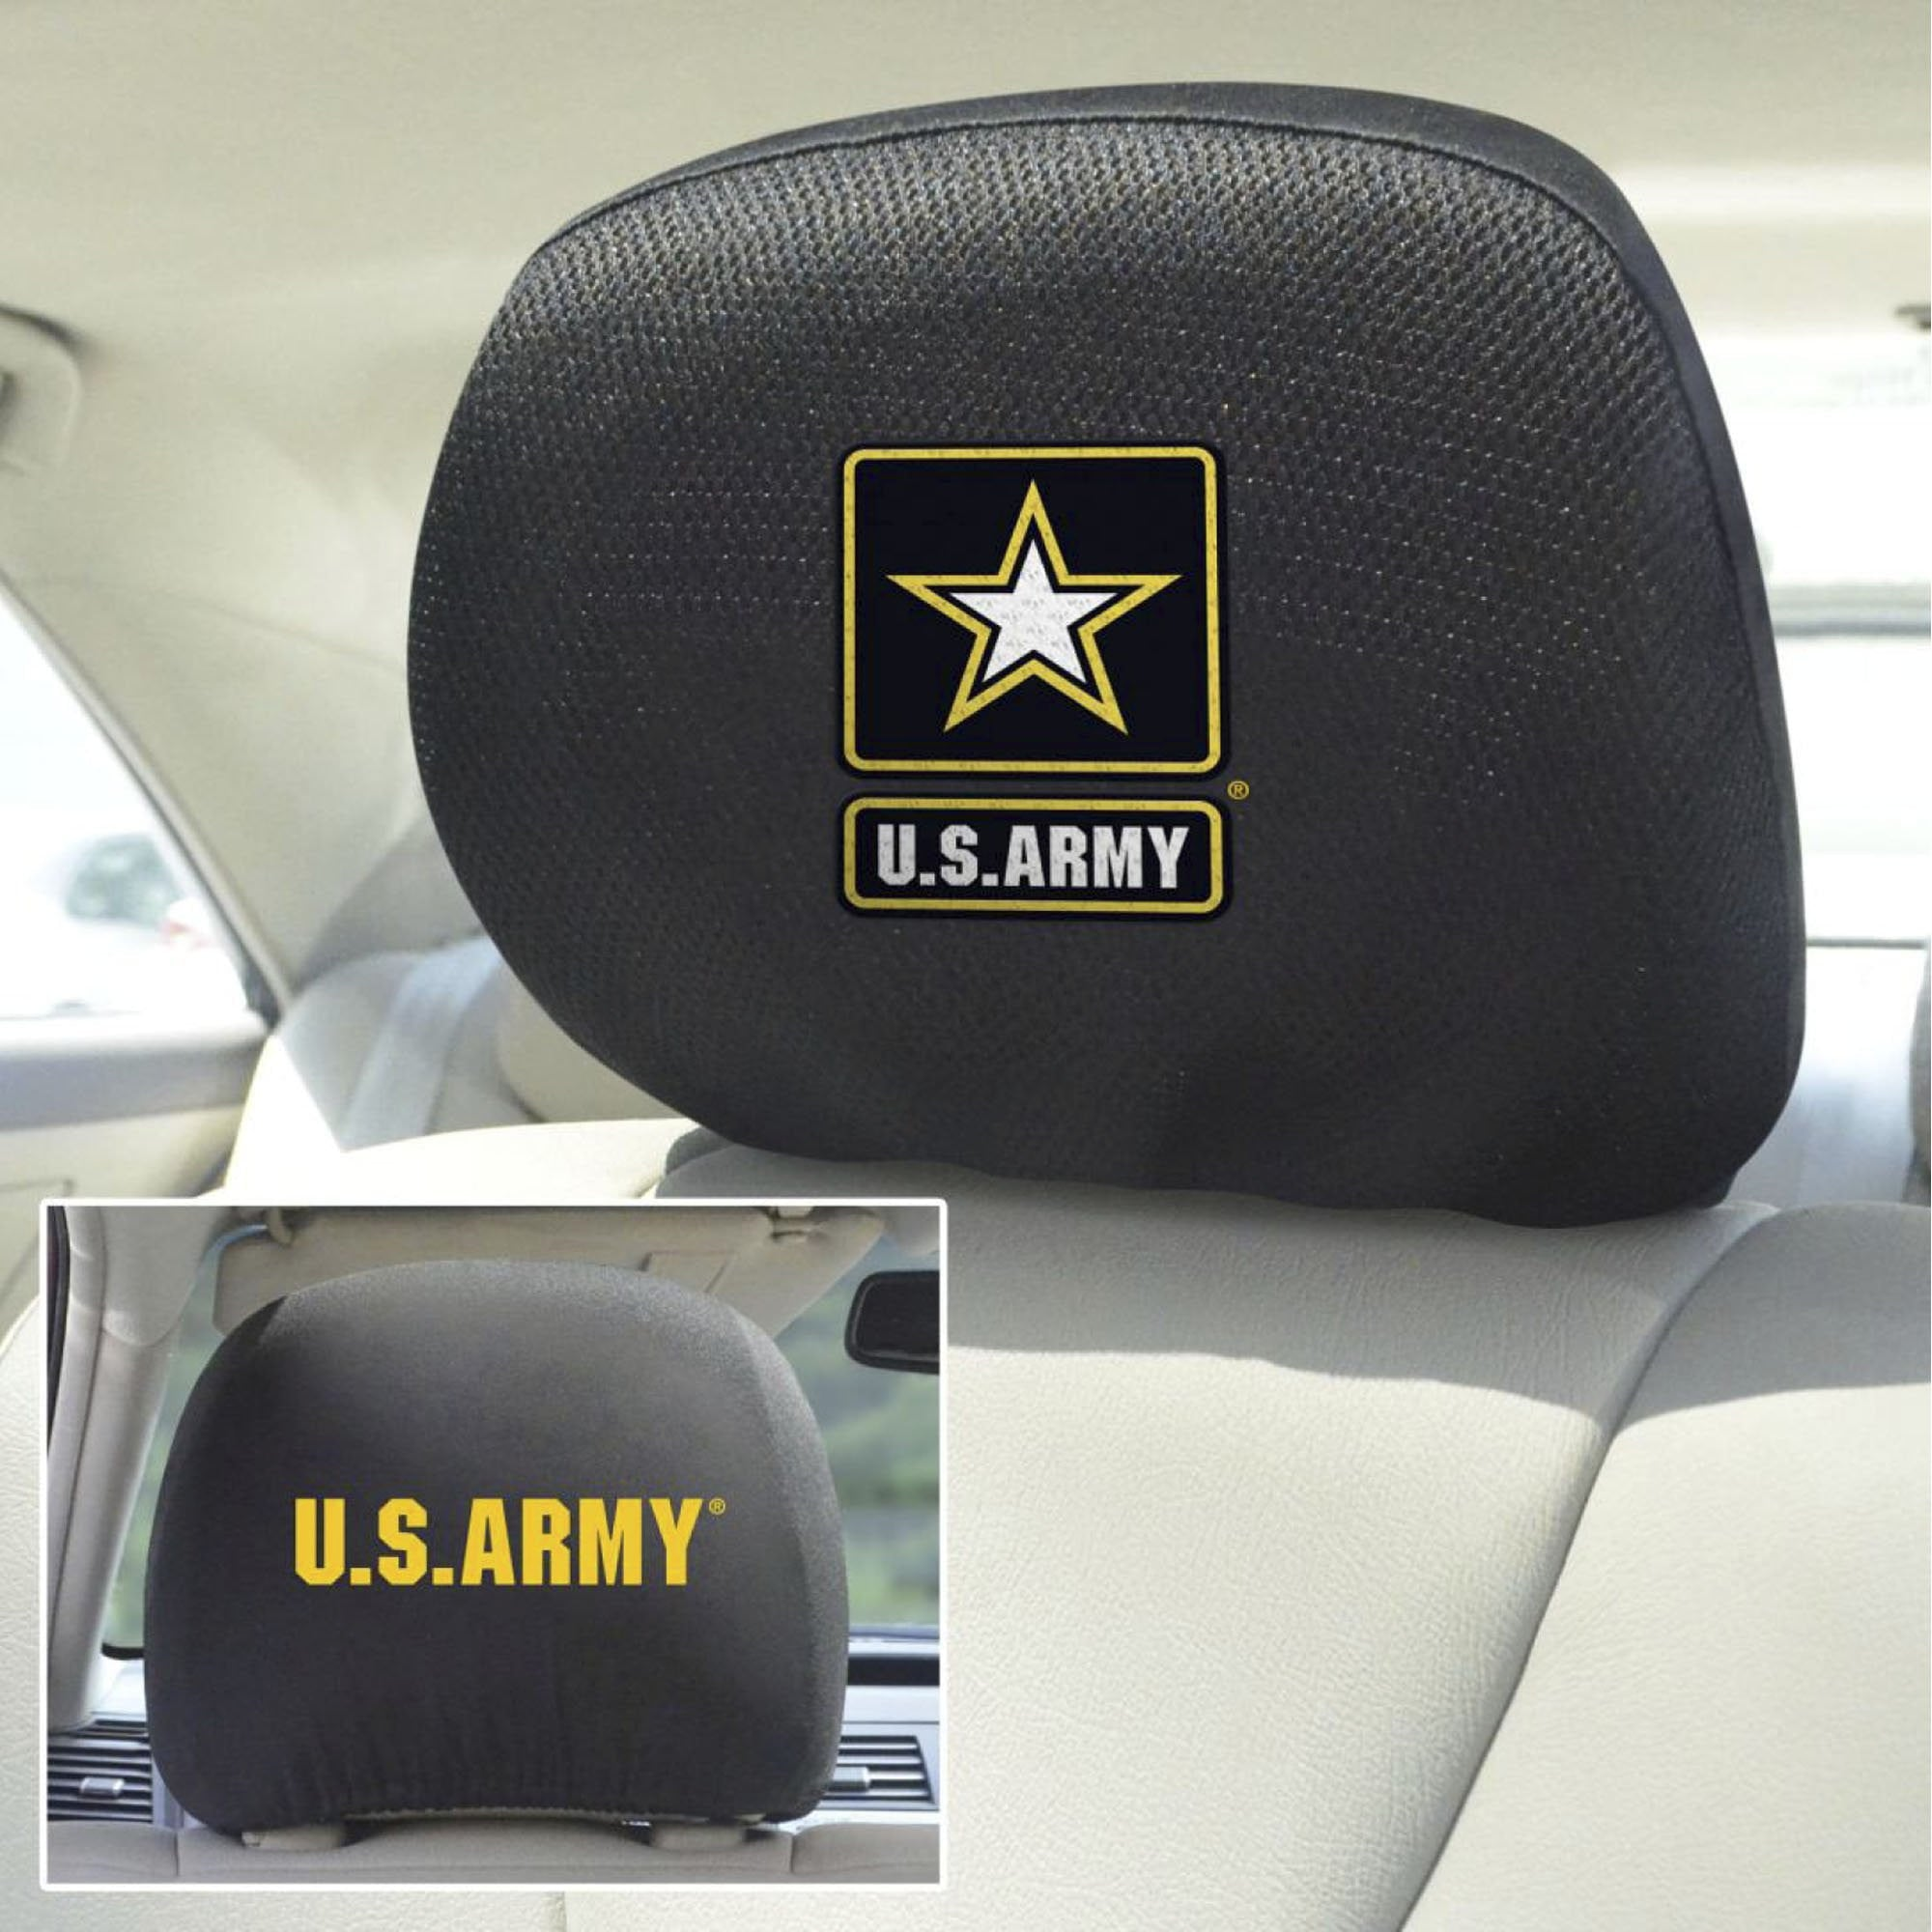 U.S. Army Set of 2 Headrest Covers